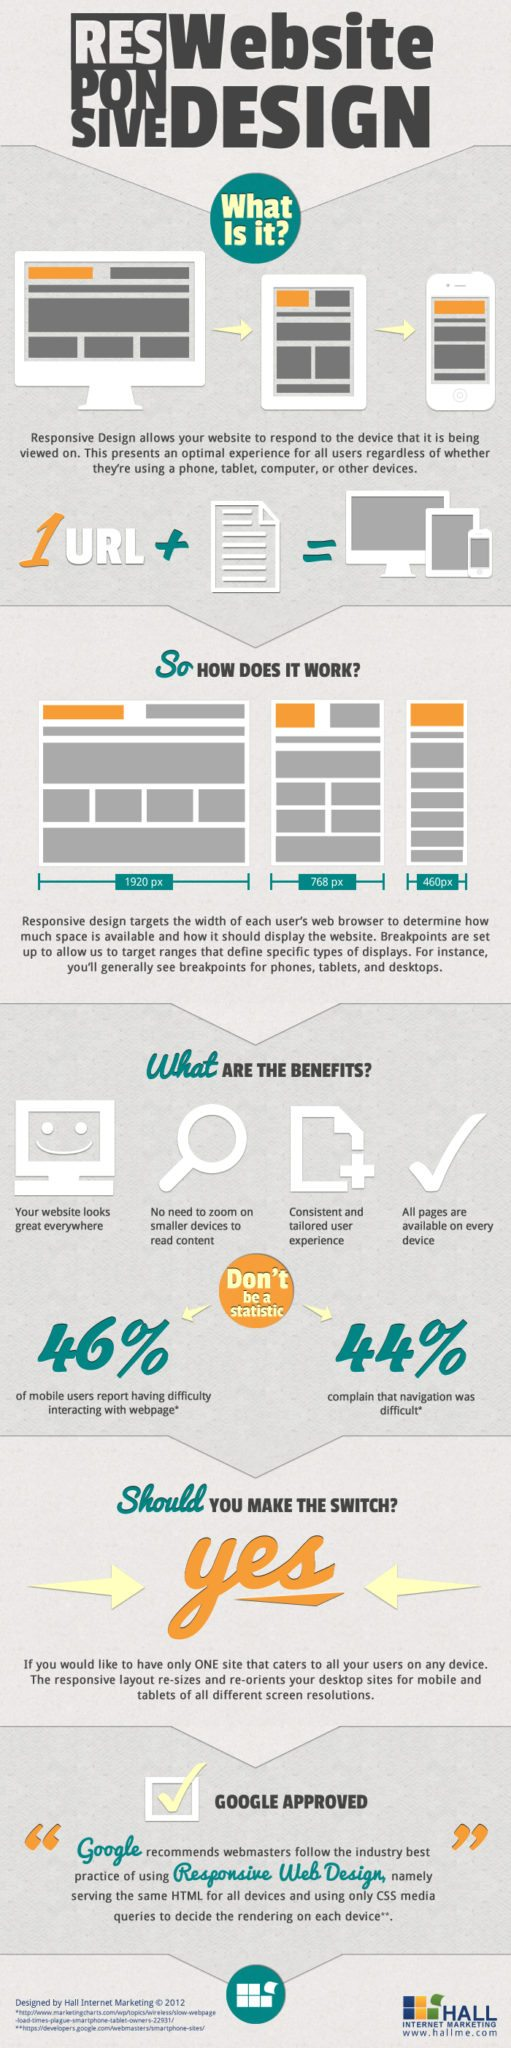 Infographic on Responsive Design